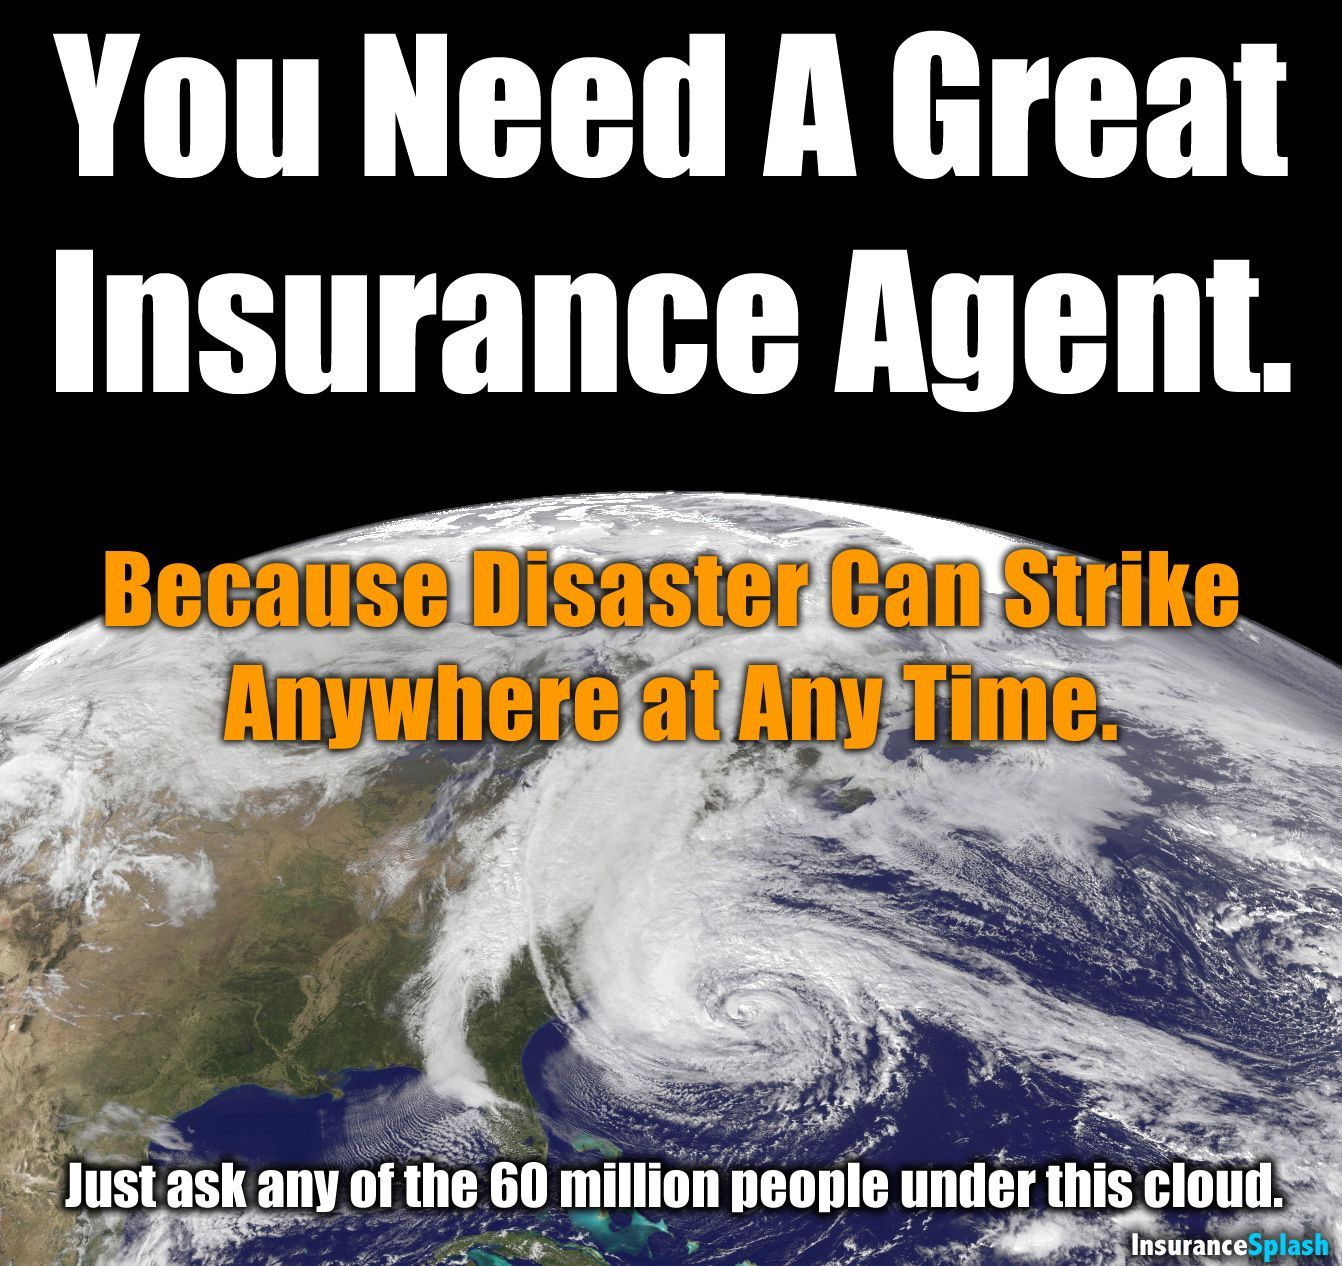 You Never Know When Disaster May Strike. Make Sure You